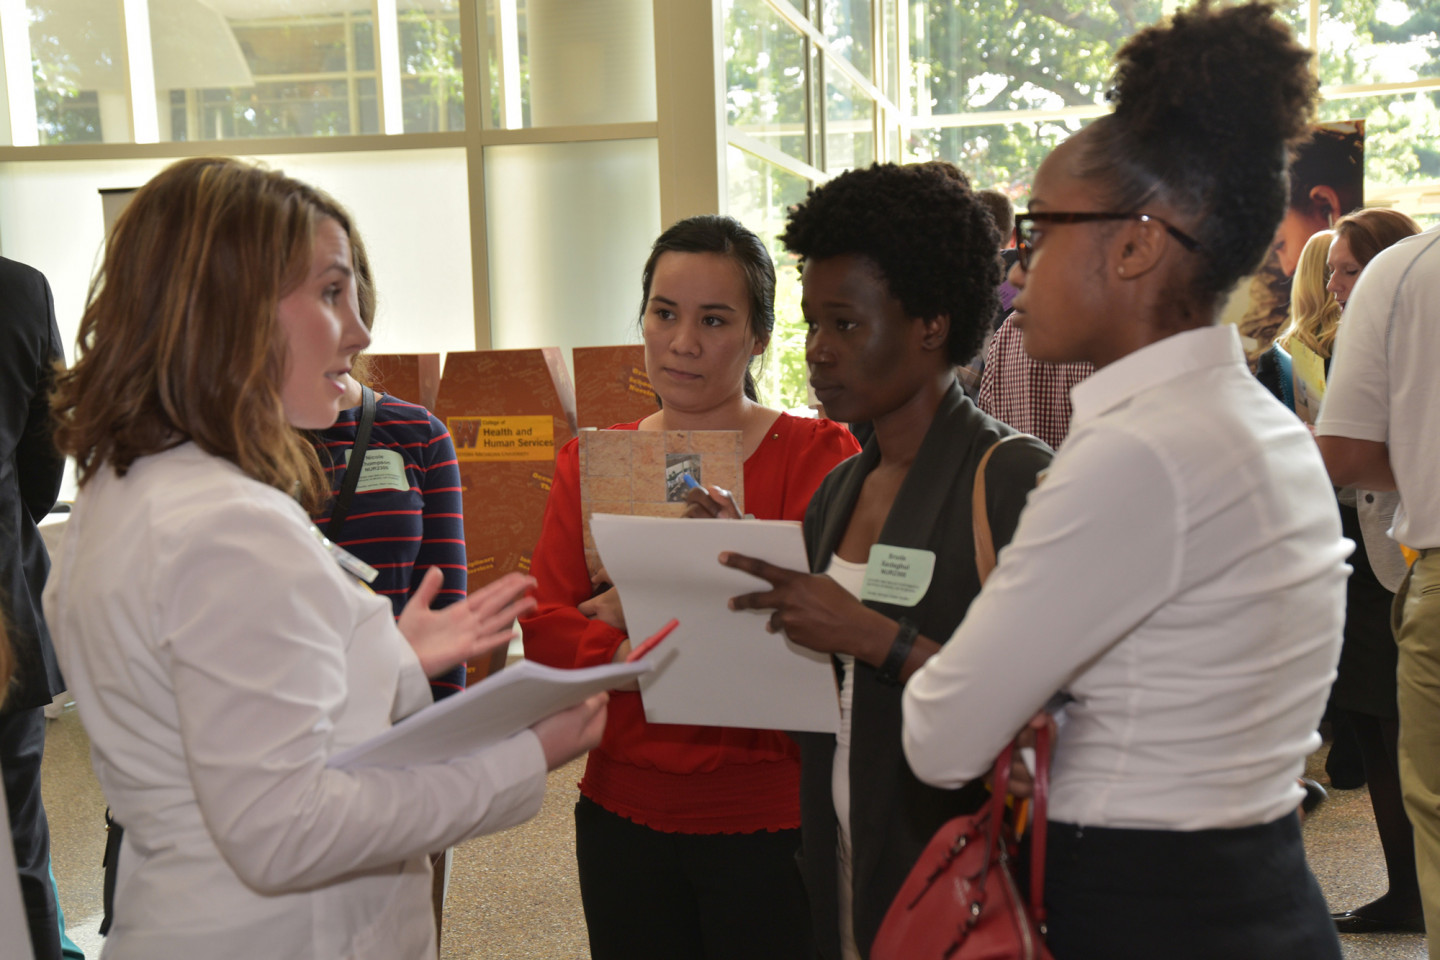 A diverse group of WMU nursing students talks with a professional at an event.